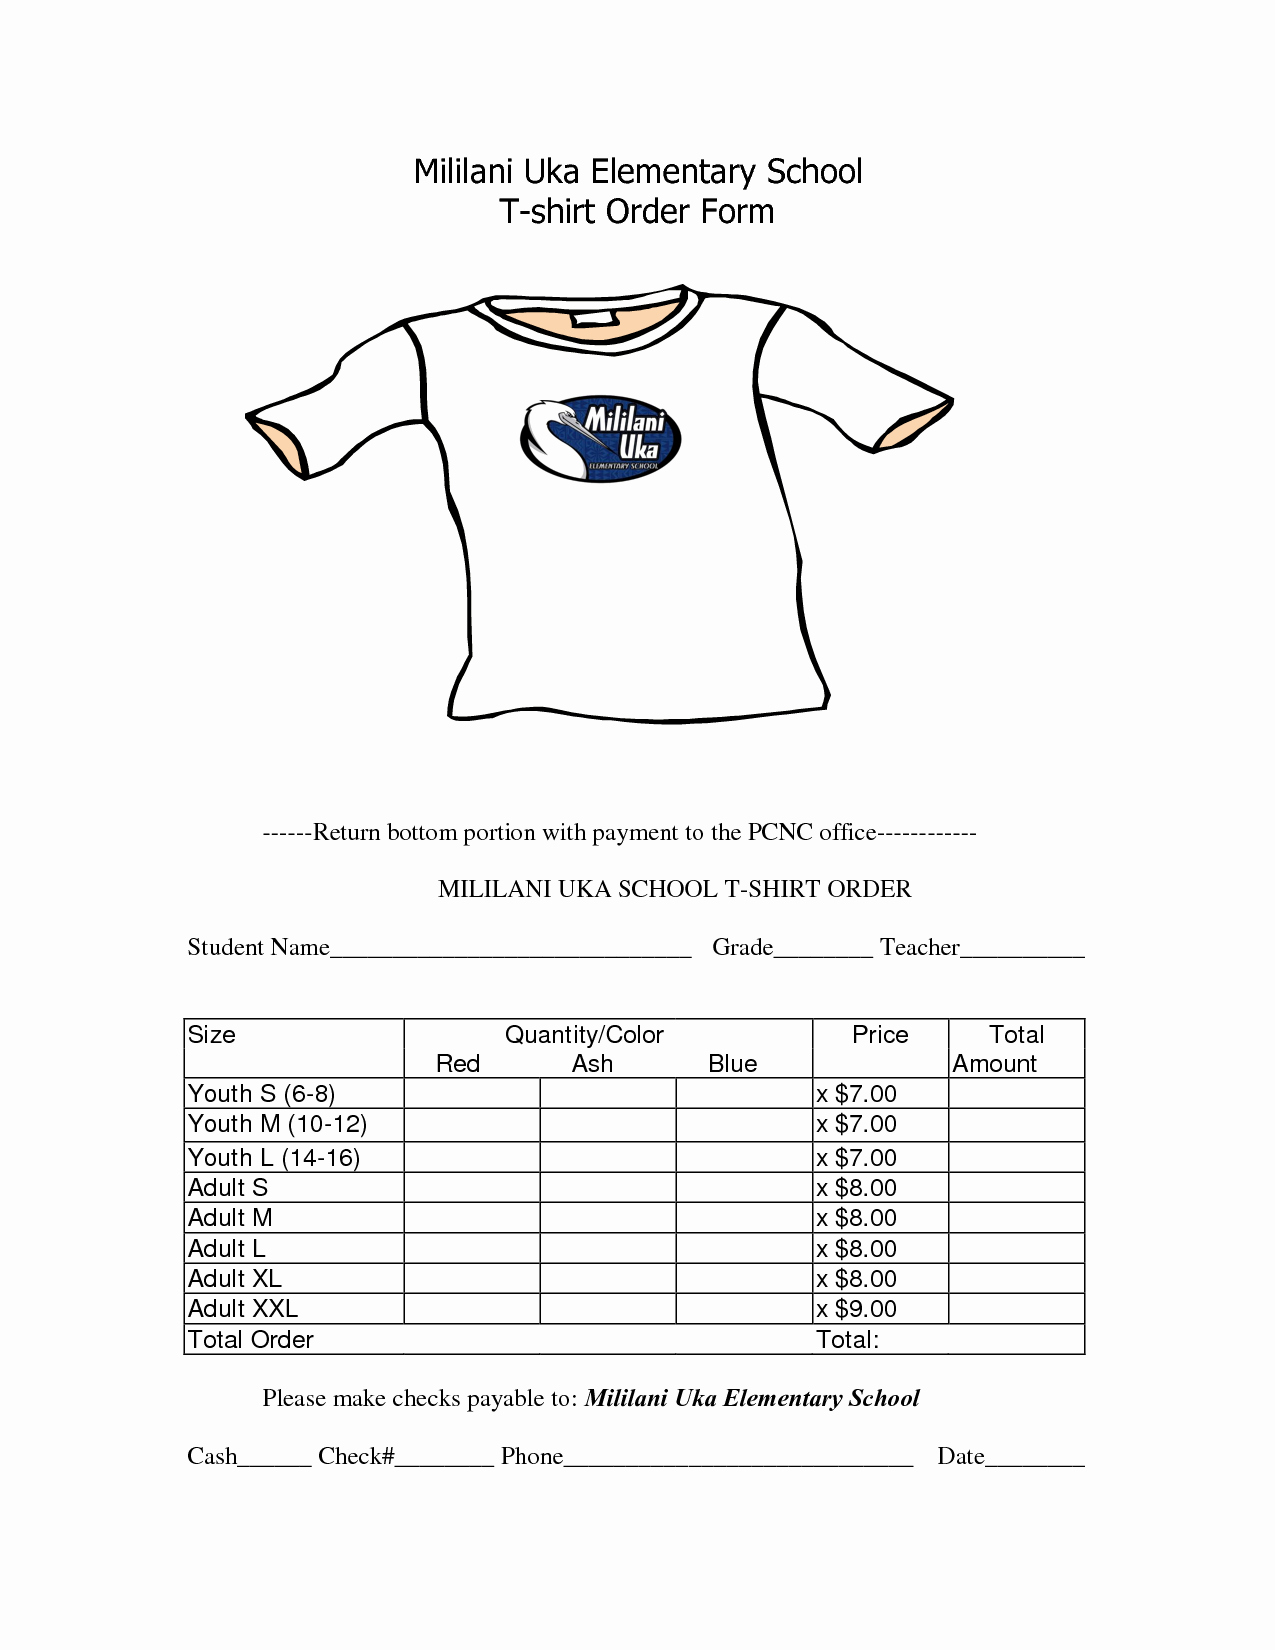 Clothing order form Template Beautiful School T Shirt order form Template Clothes